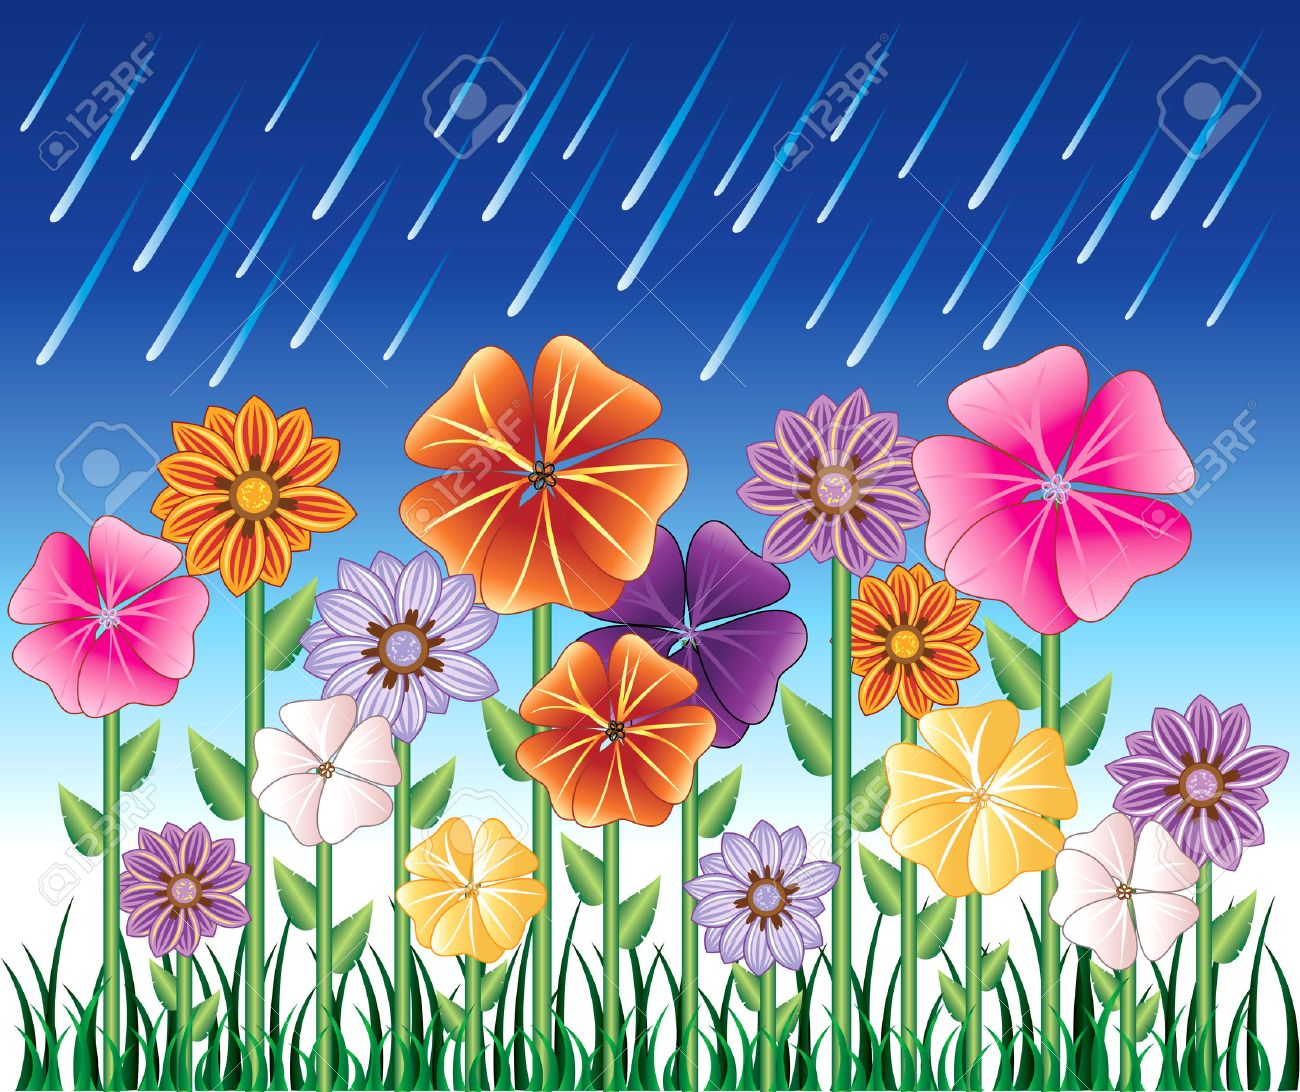 illustration of a Spring Day 2 with Rain and Flower Garden with grass. - 7091822